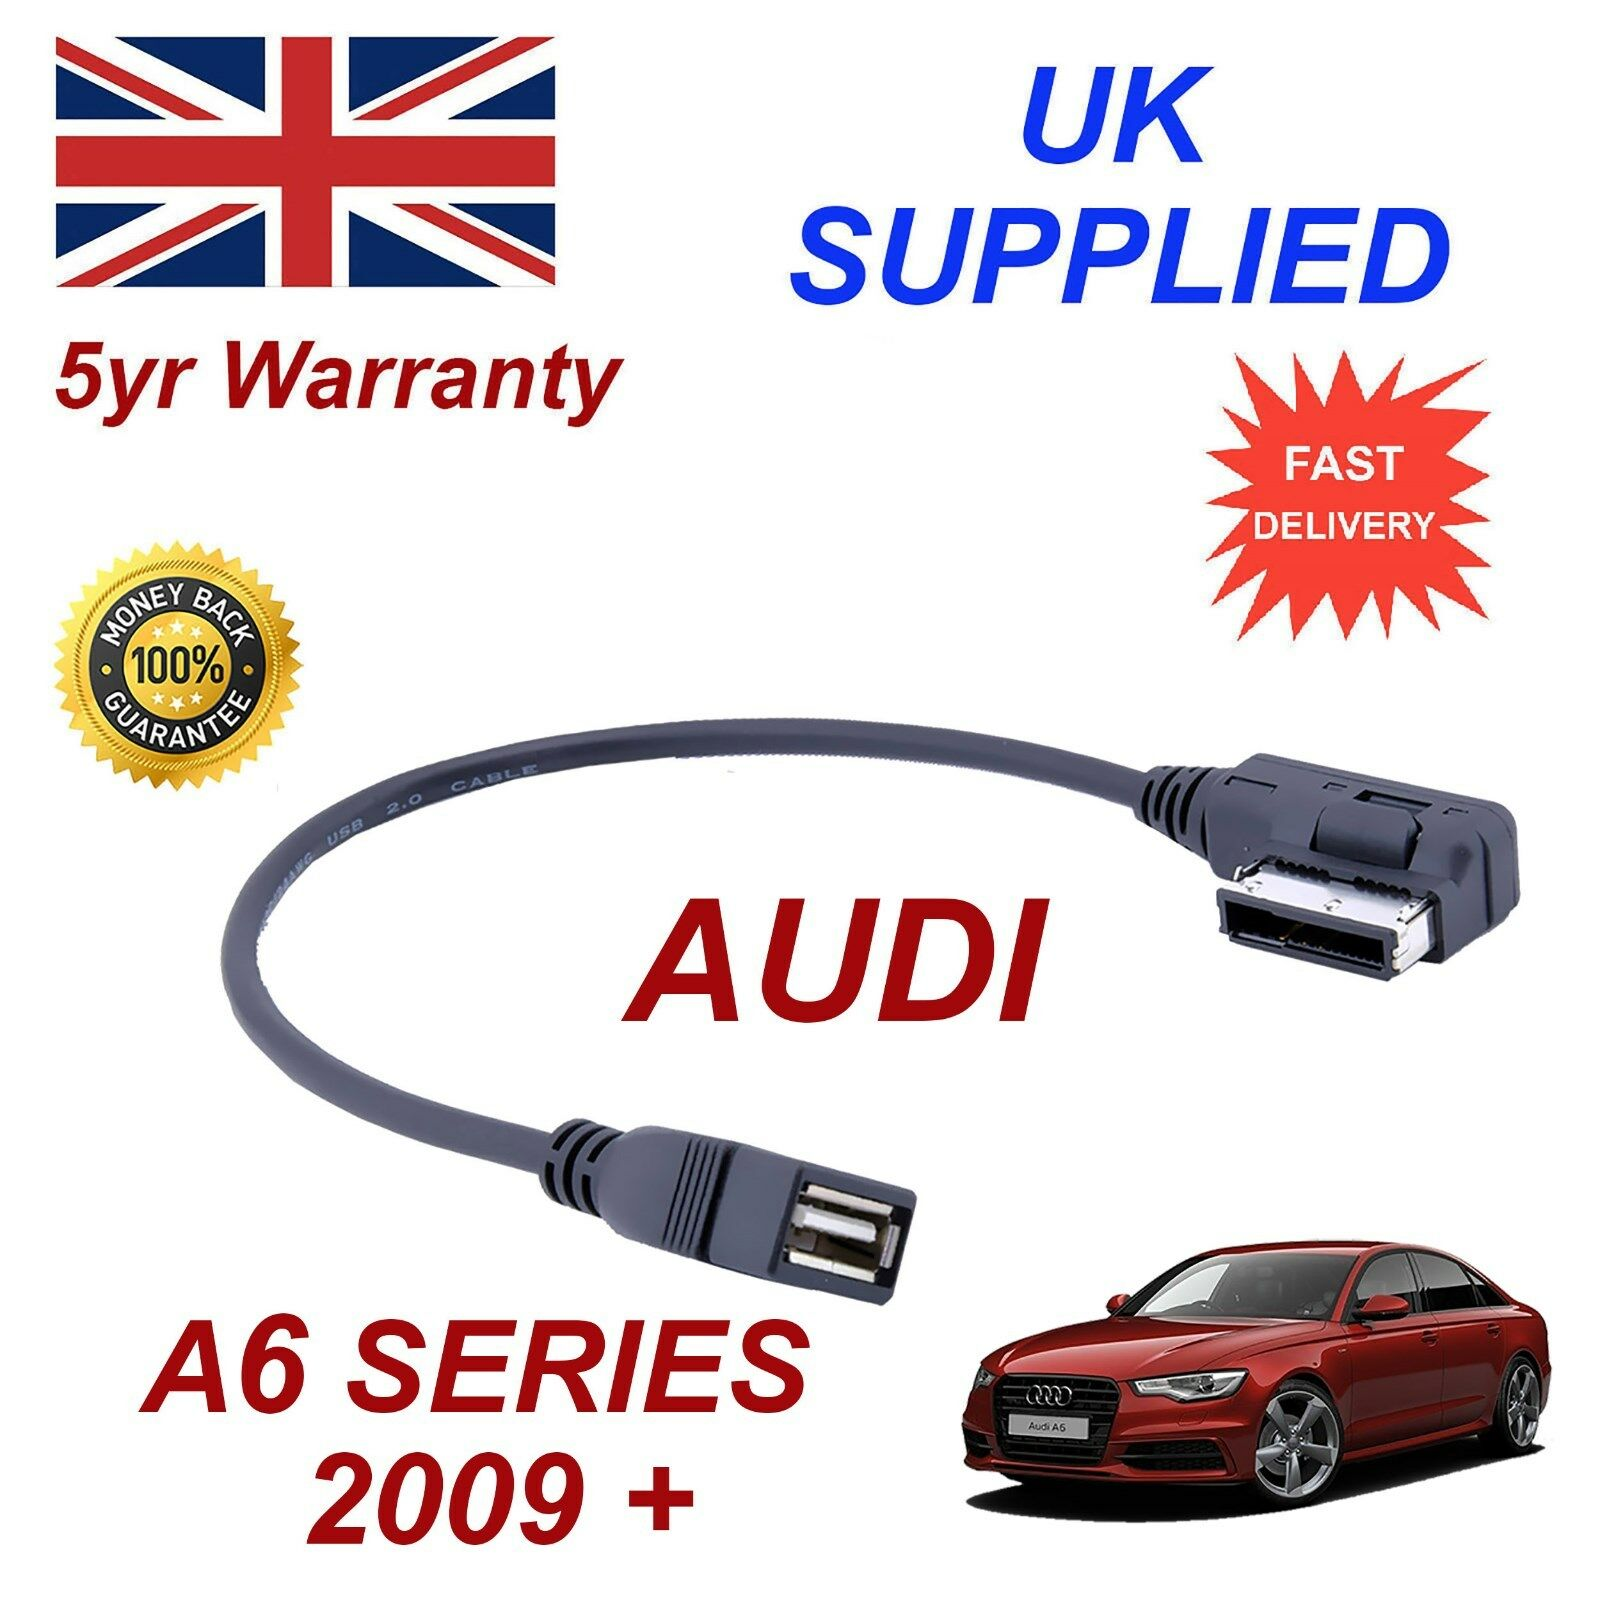 For Audi A6 4f0051510q Memory Stick Amp Mp3 Usb Socket Ami Mmi Audio Cable 163 10 95 Picclick Uk